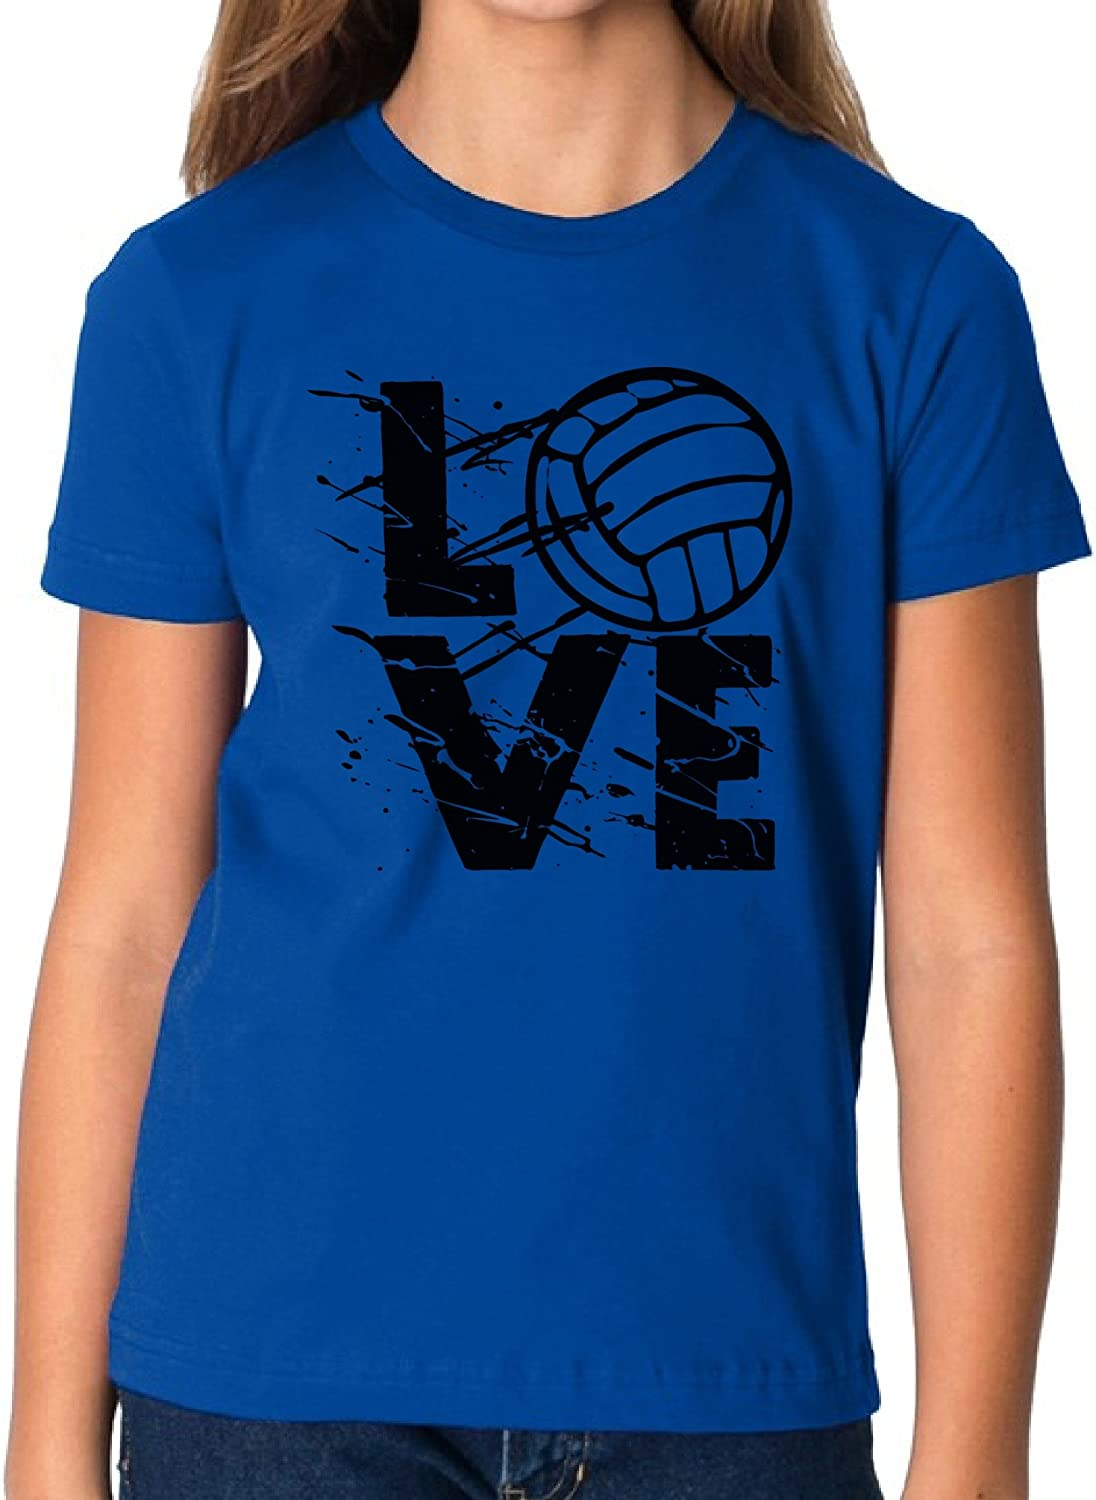 Vizor Volleyball Love Youth T Shirts Tees for Volleyball Lovers